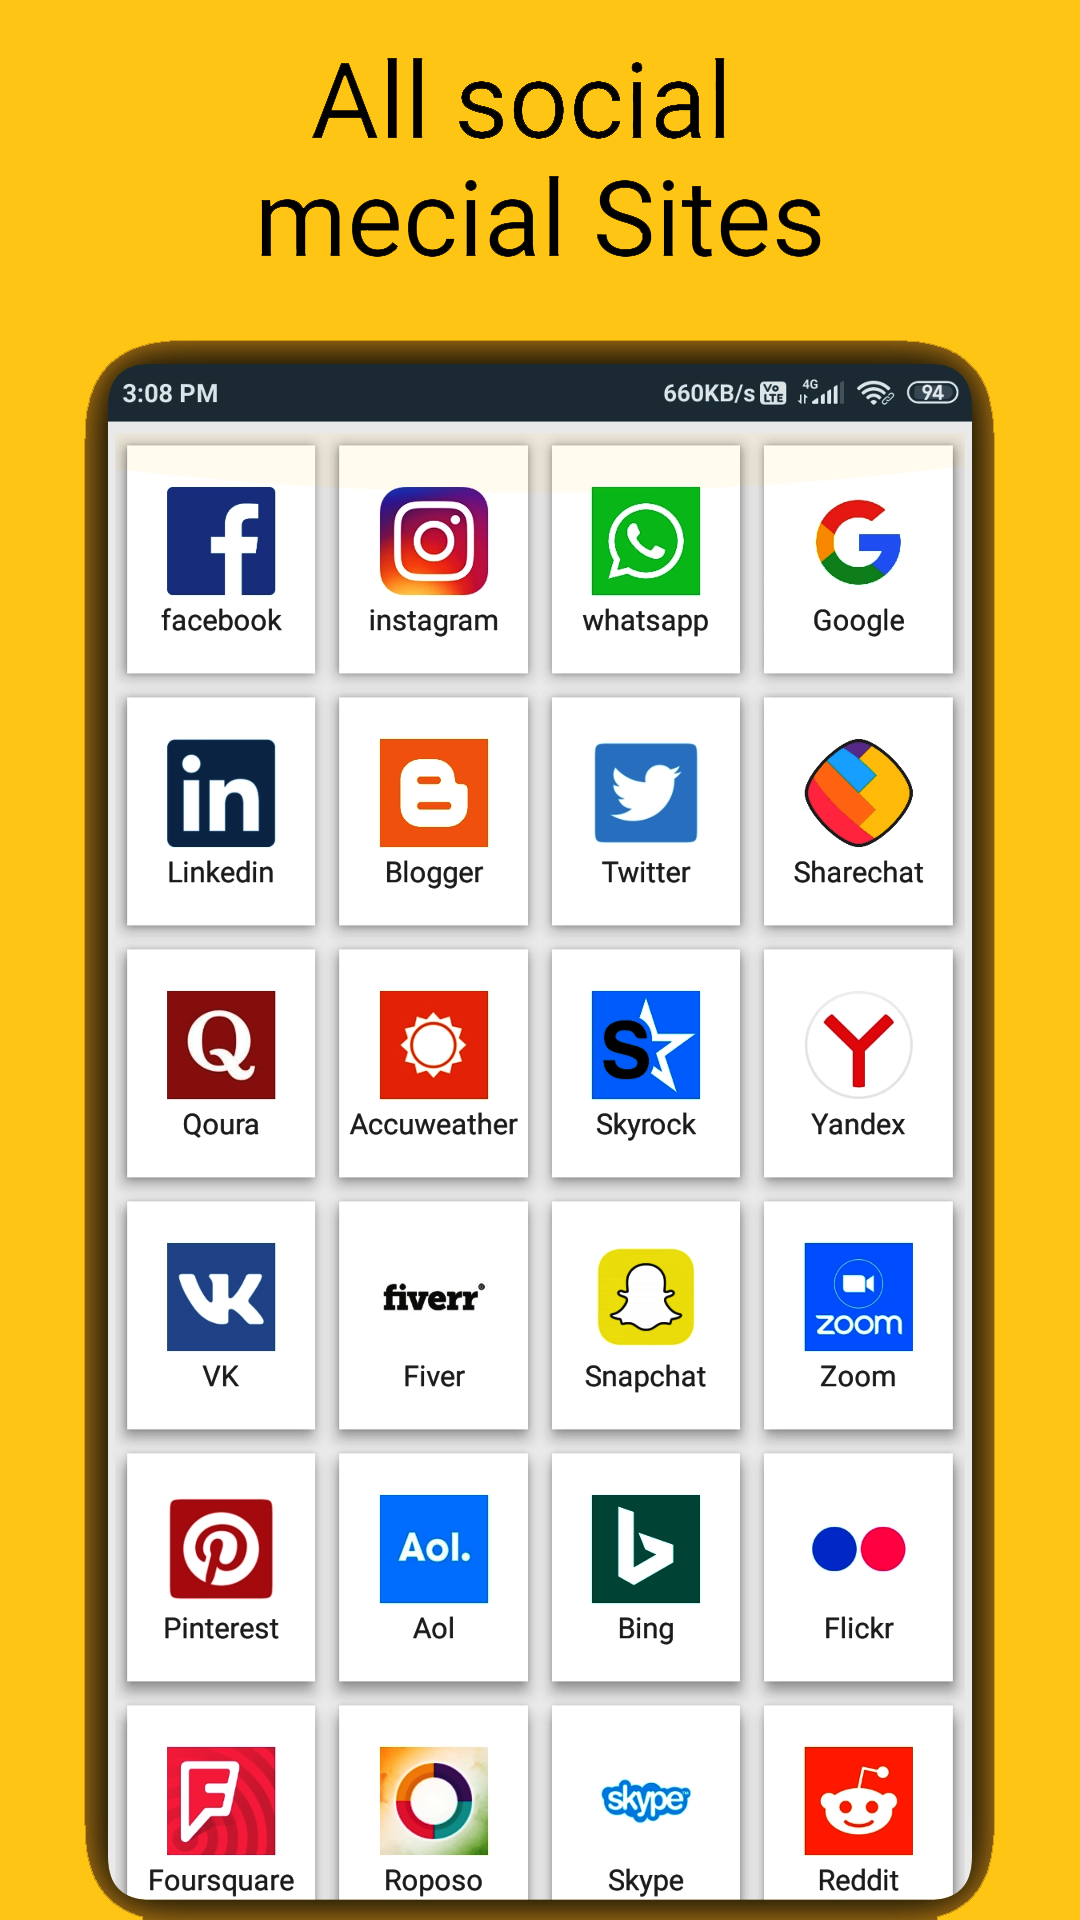 All in one social Media & social networking